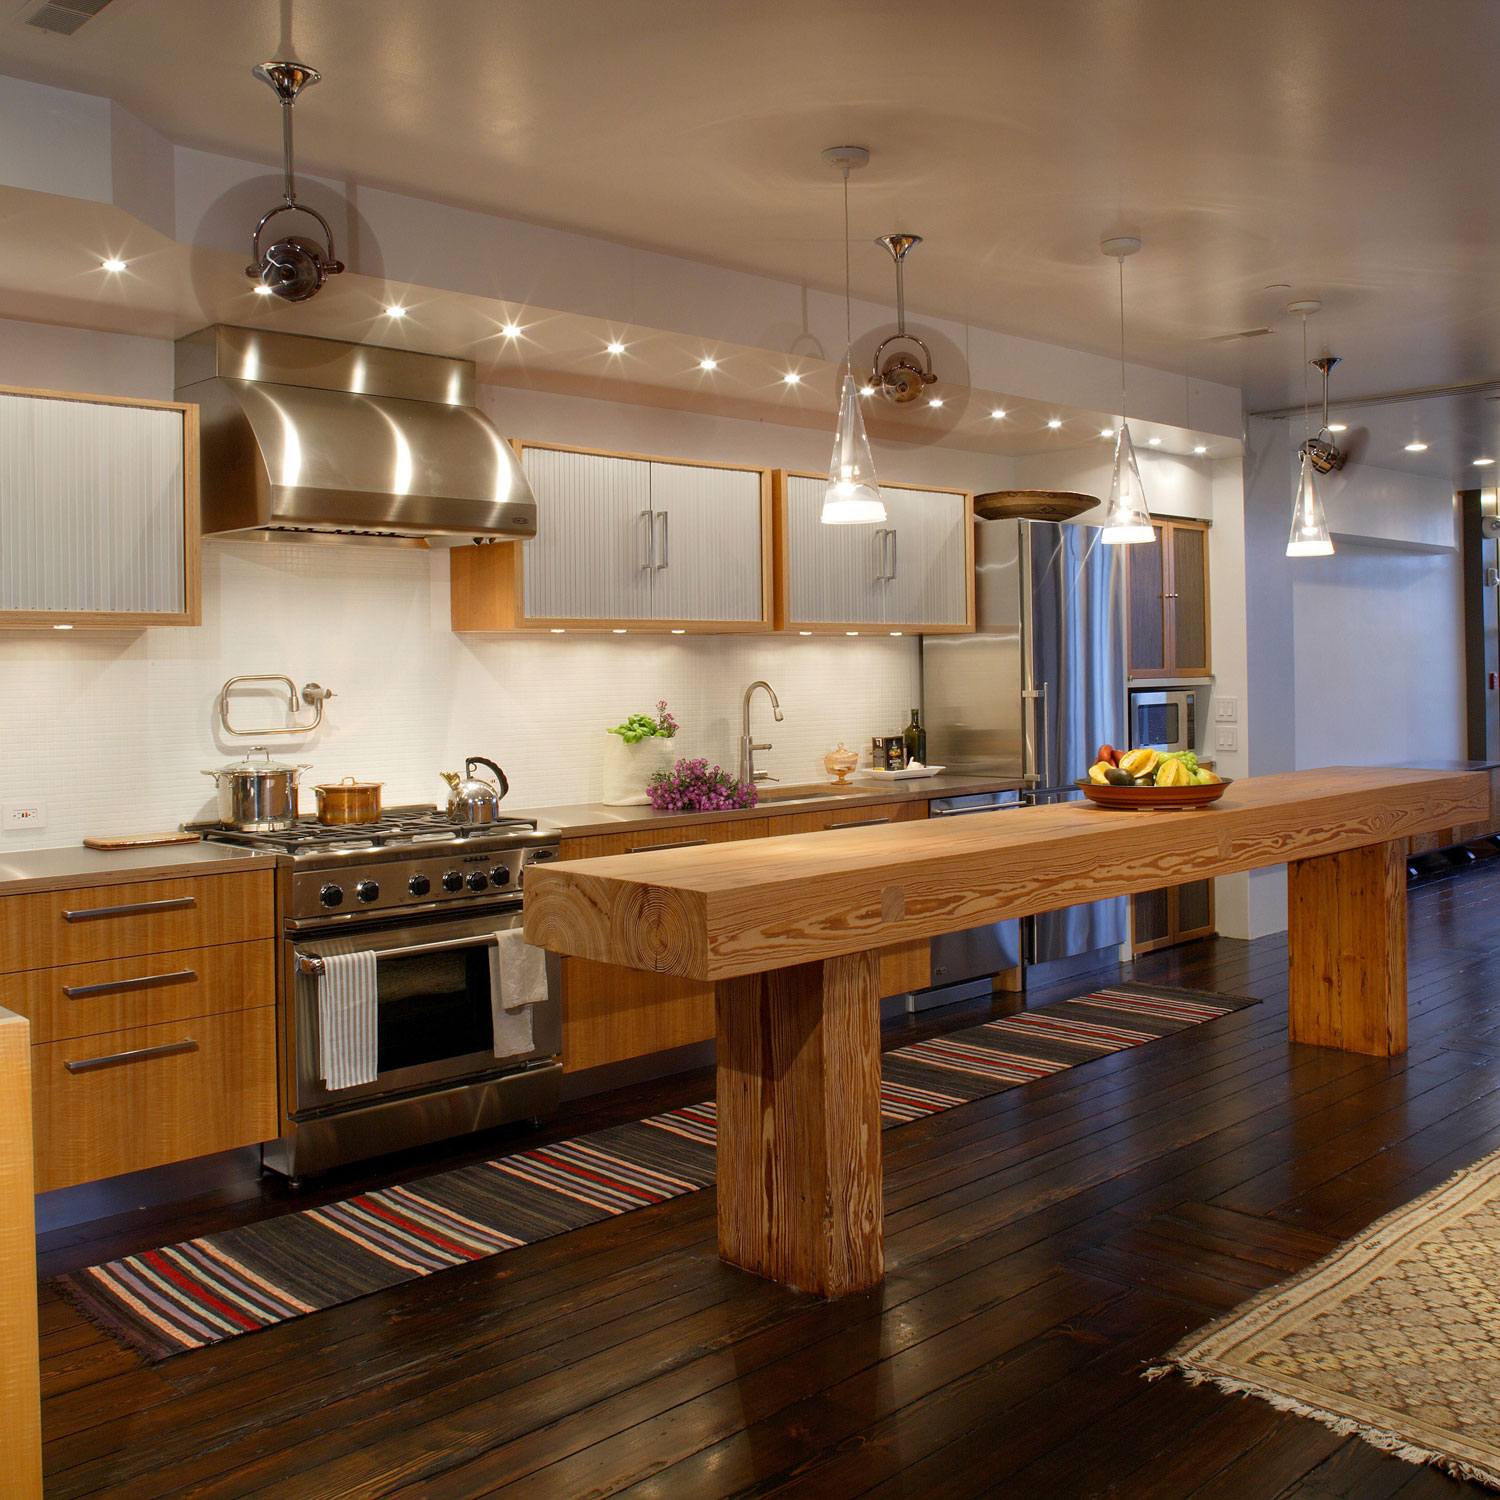 Modern Kitchen Fans 10 Tips To Help You Get The Right Ceiling Fan For Kitchen